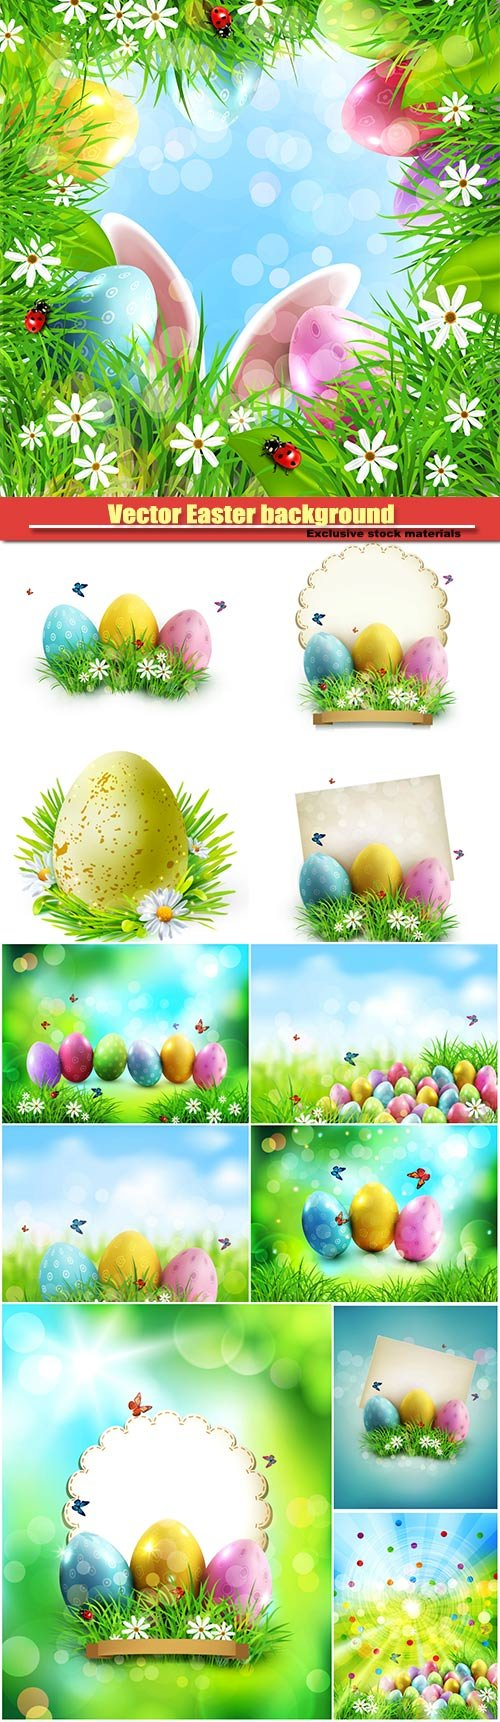 Vector Easter background, easter eggs in green grass with white flowers, butterflies on blue, blurred , natural background